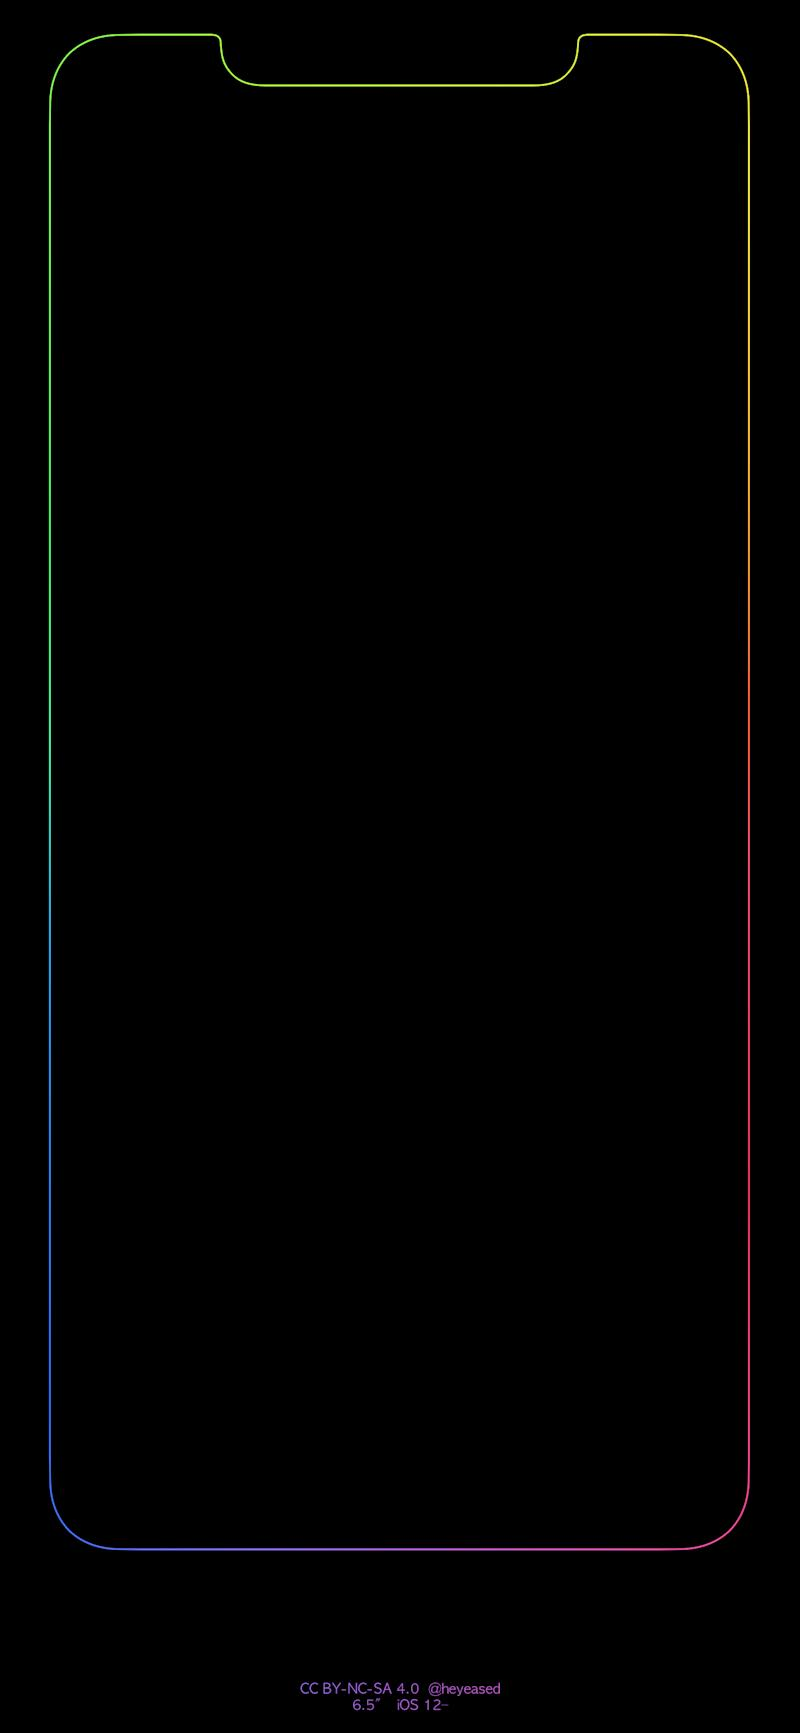 The Ultimate Iphone X Wallpaper Has Finally Been Updated For The